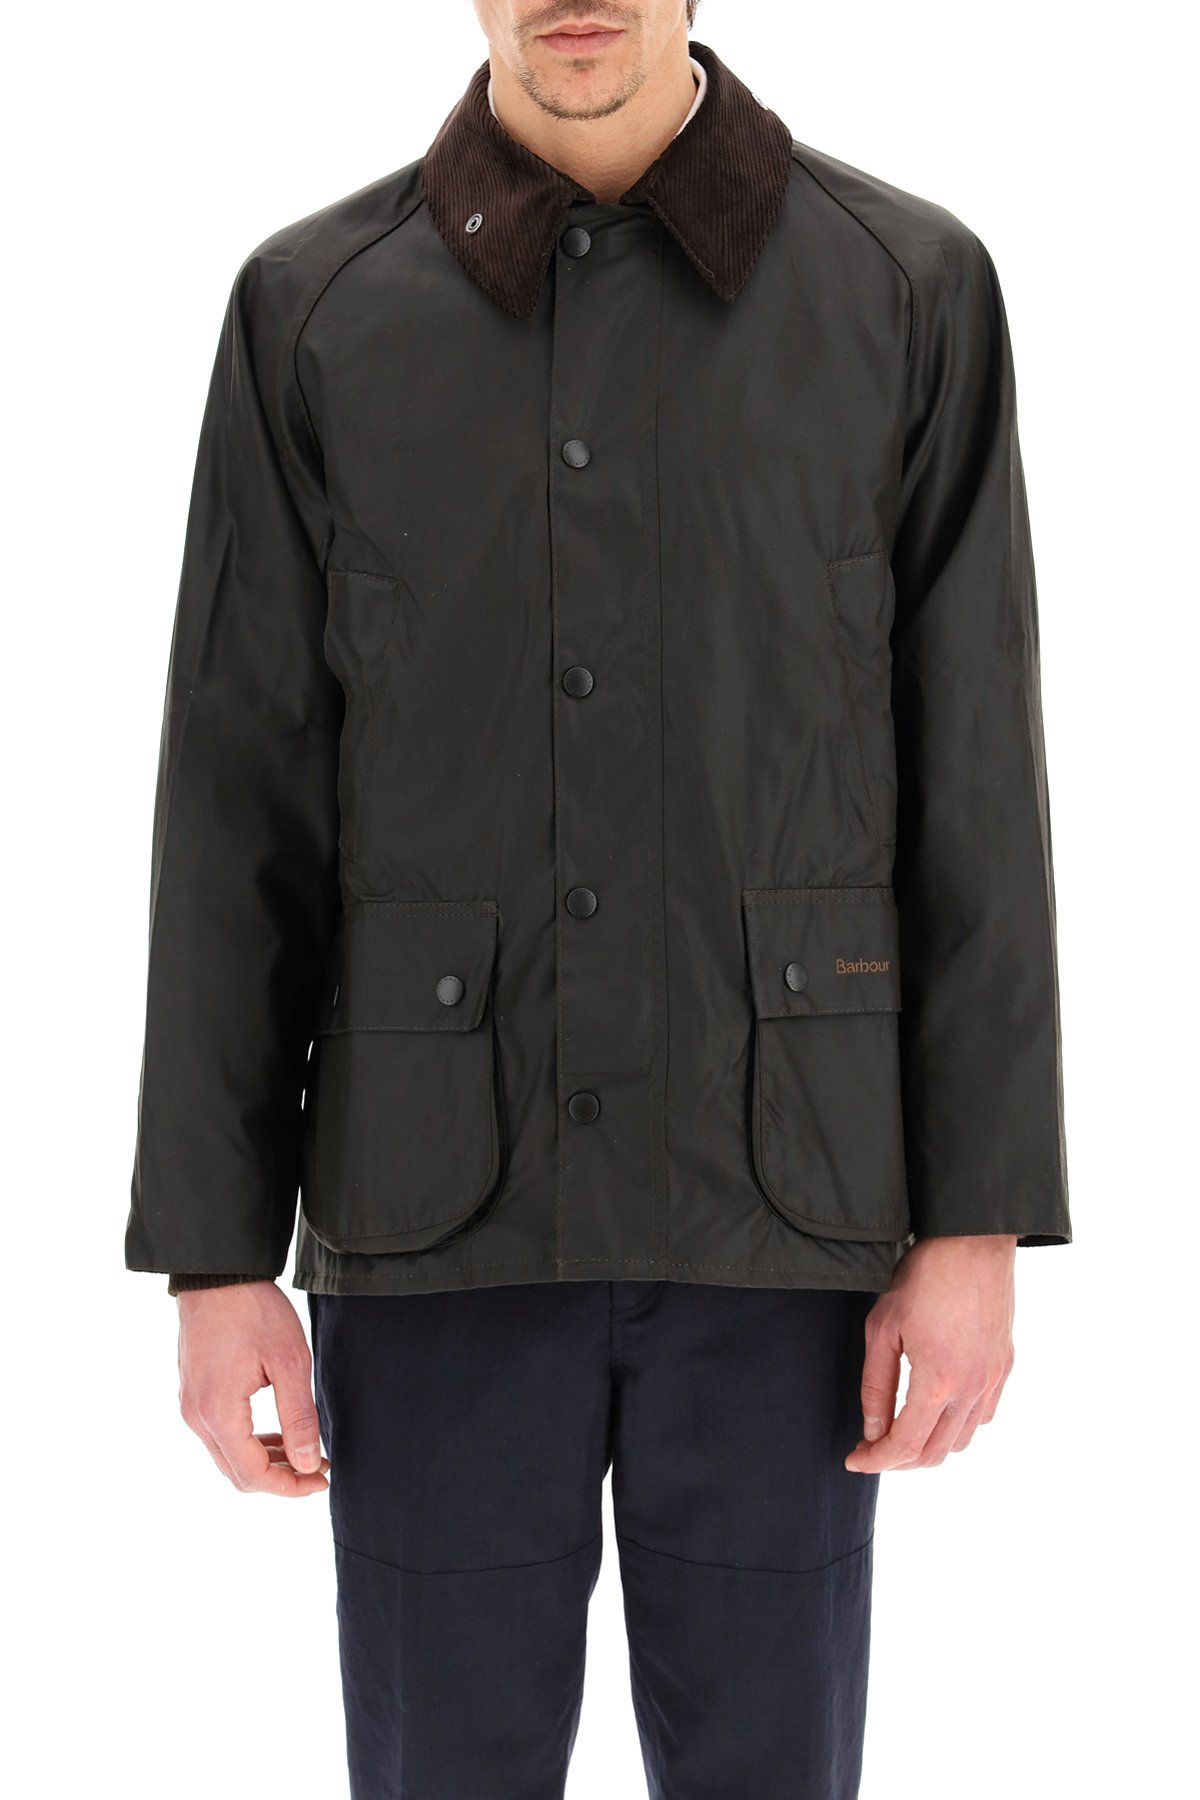 Barbour giacca classic bedale in cotone cerato